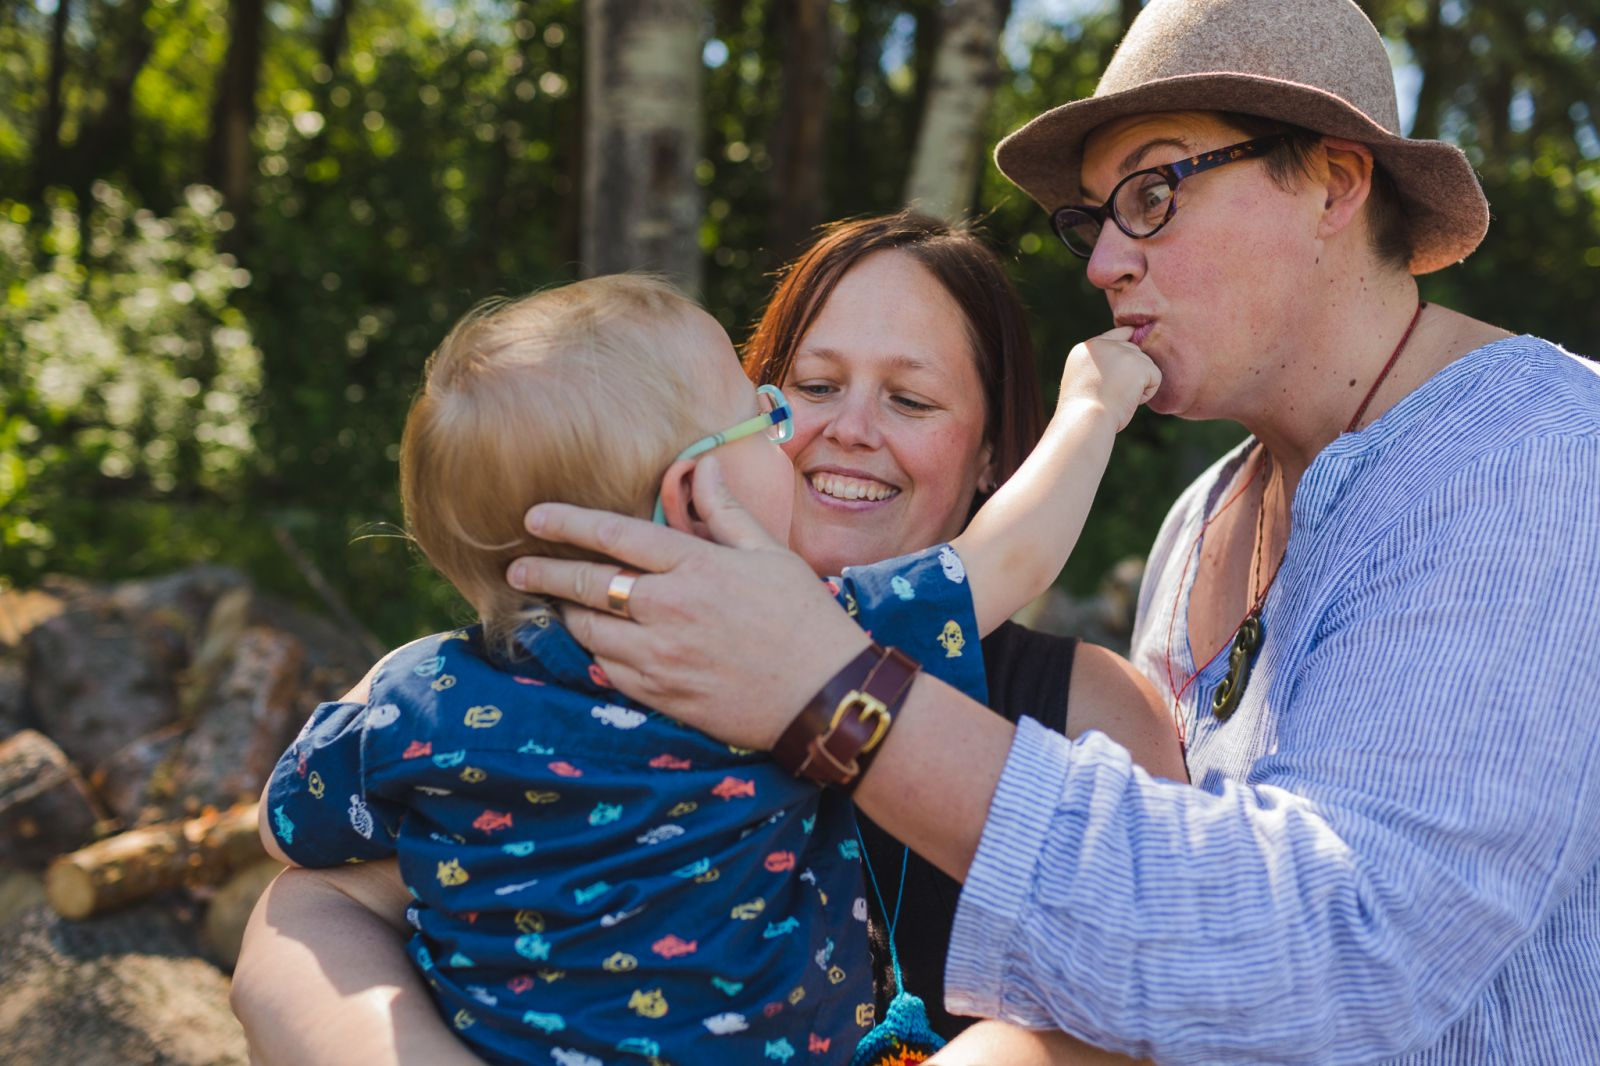 a toddler with his two moms photographed by lgbtp+ friendly Edmonton photographer